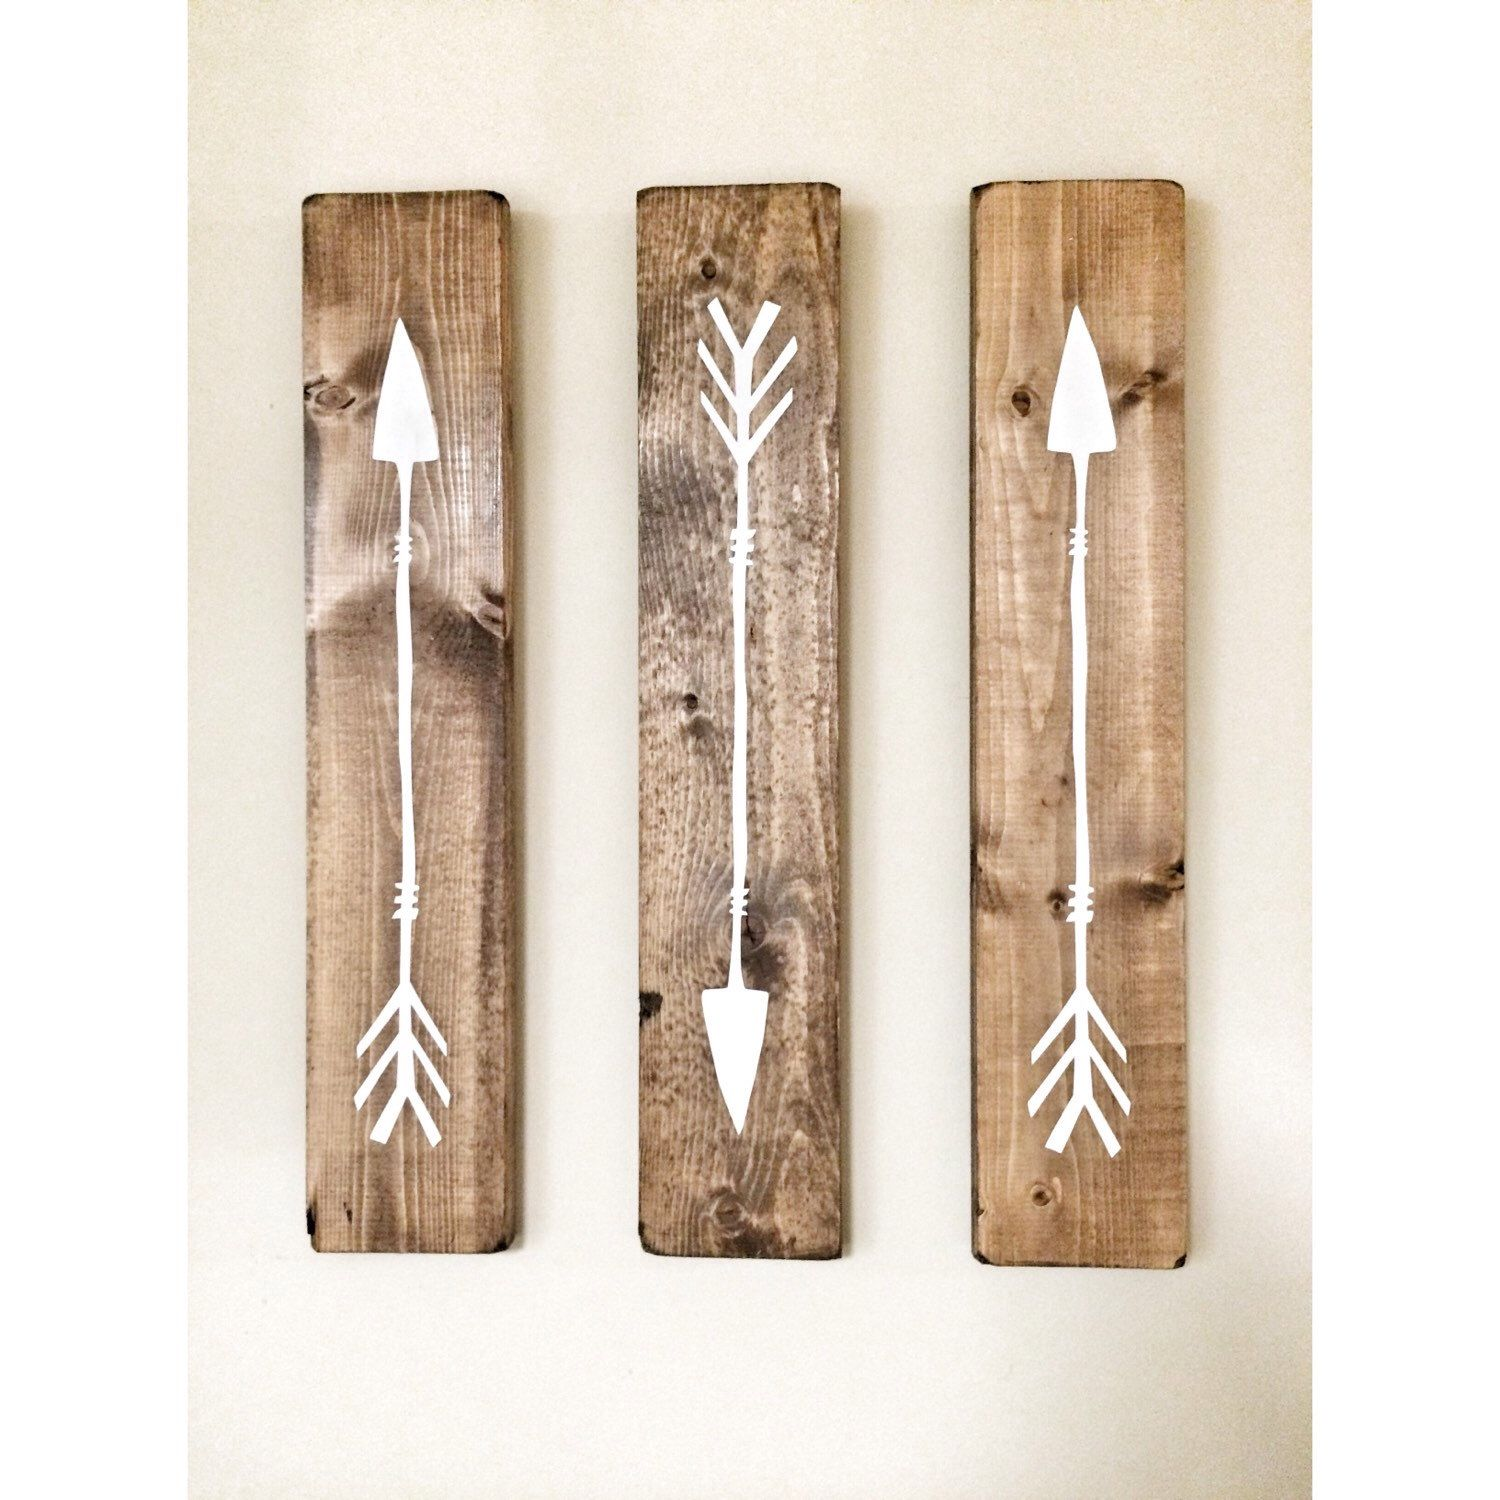 Rustic Wooden Decor Set Of 3 Wooden Arrows Rustic Decor For Wall Farmhouse